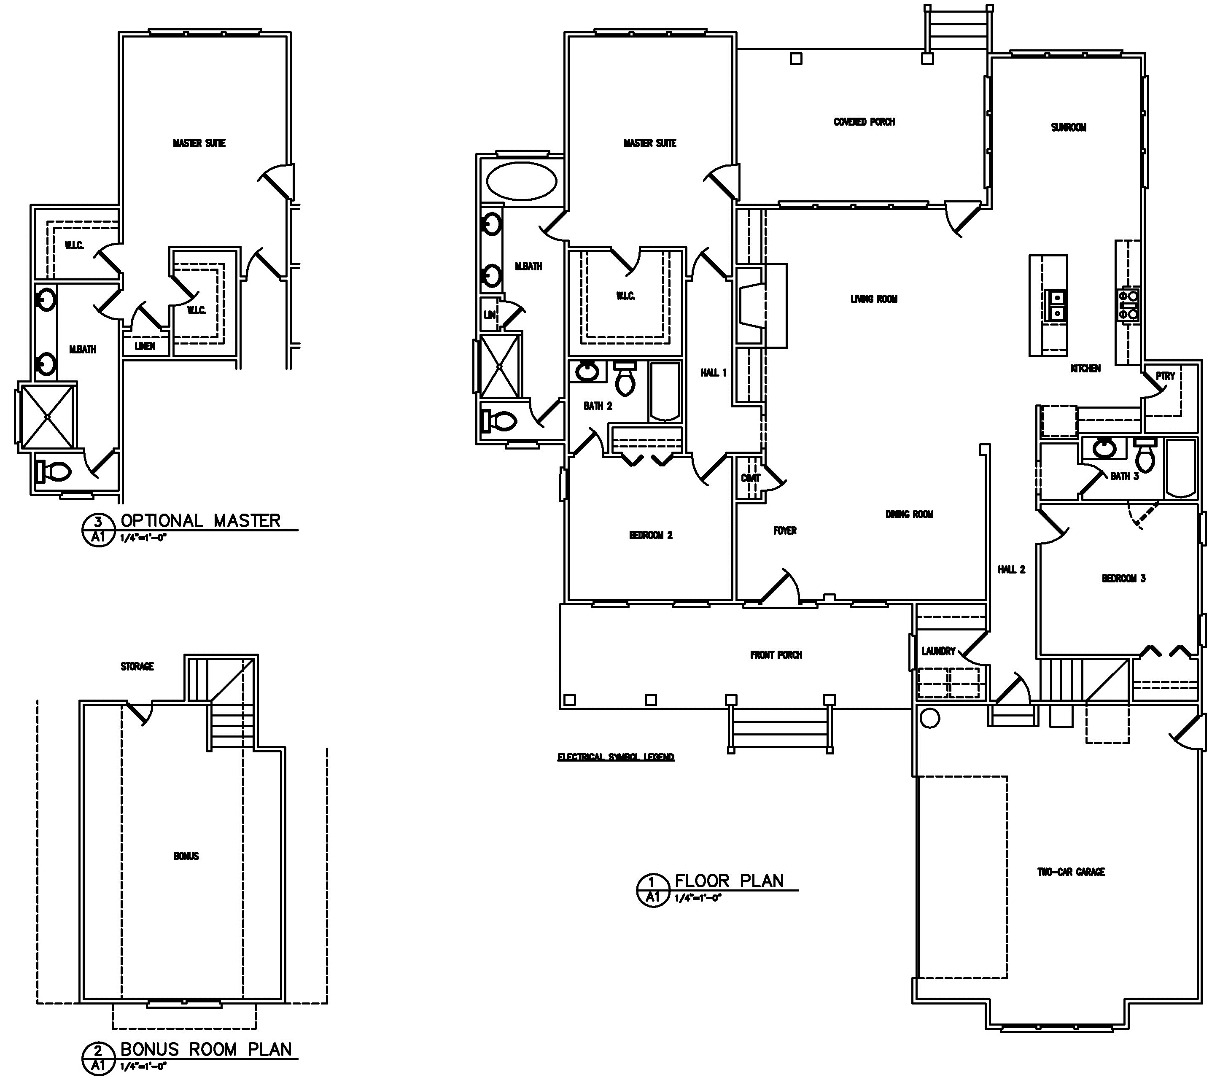 Laurel RL-Floorplan.jpg